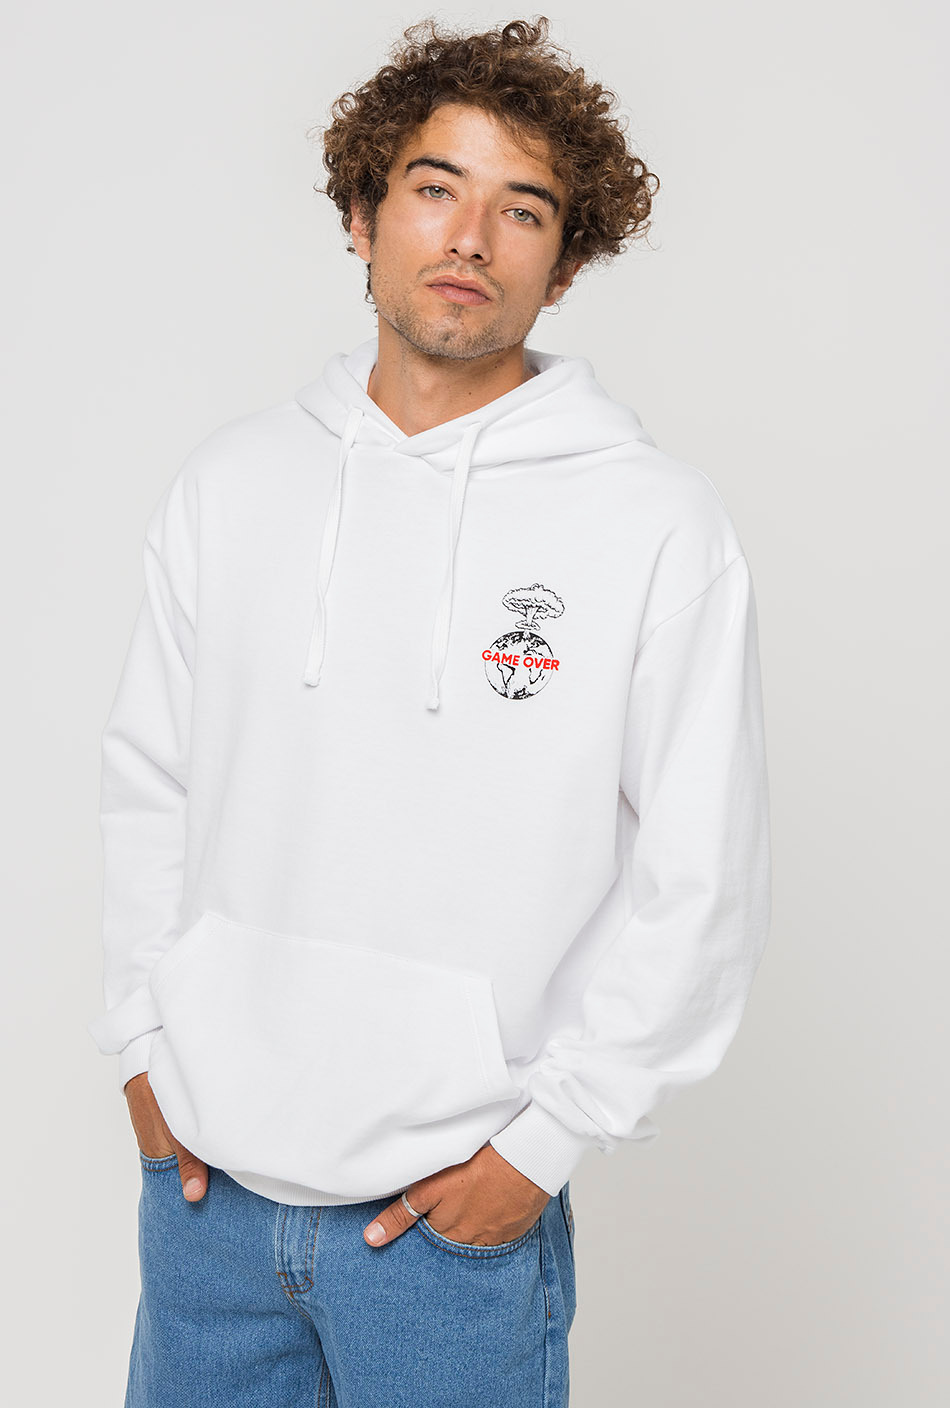 Game Over white hoodie